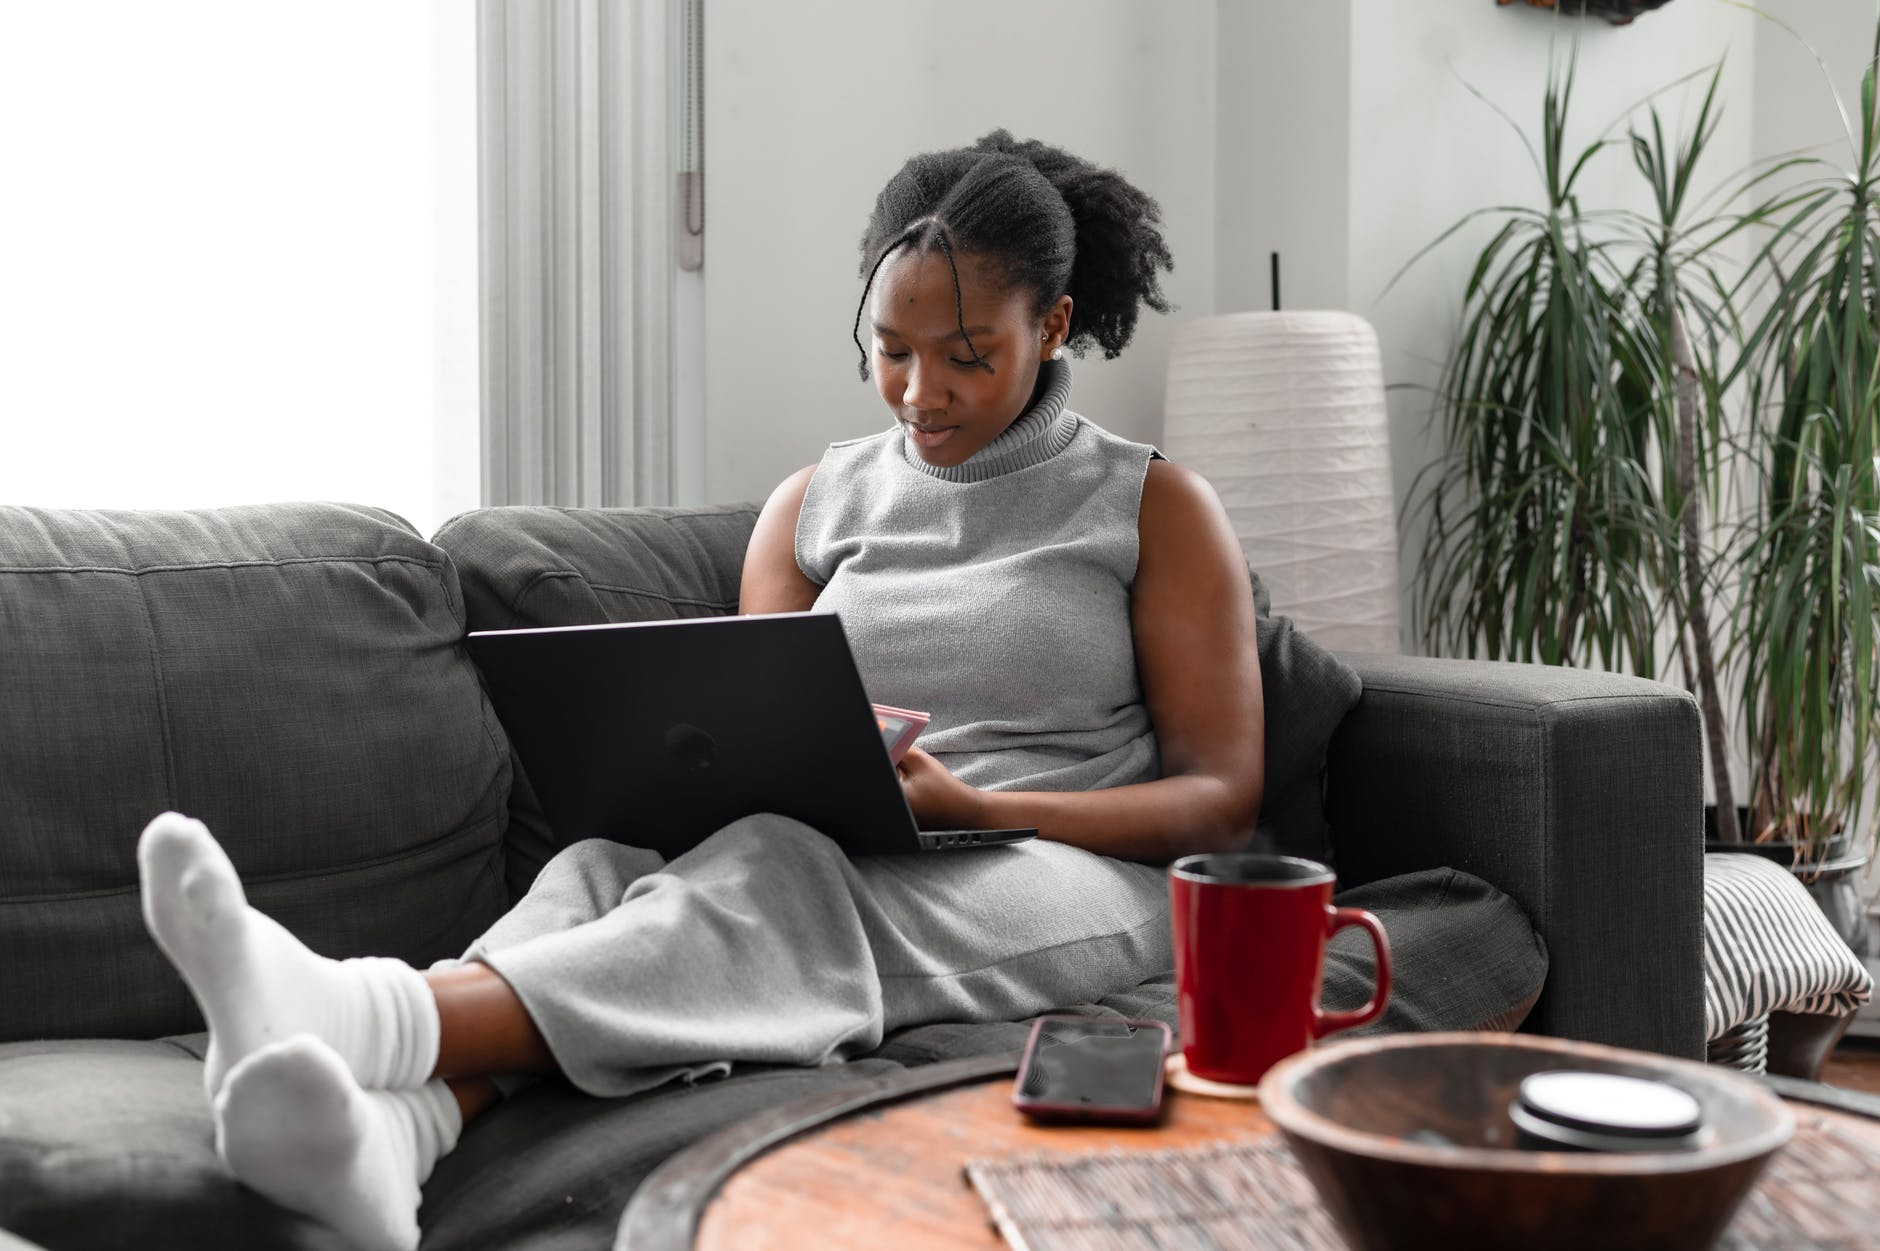 Black woman sitting on couch working on laptop